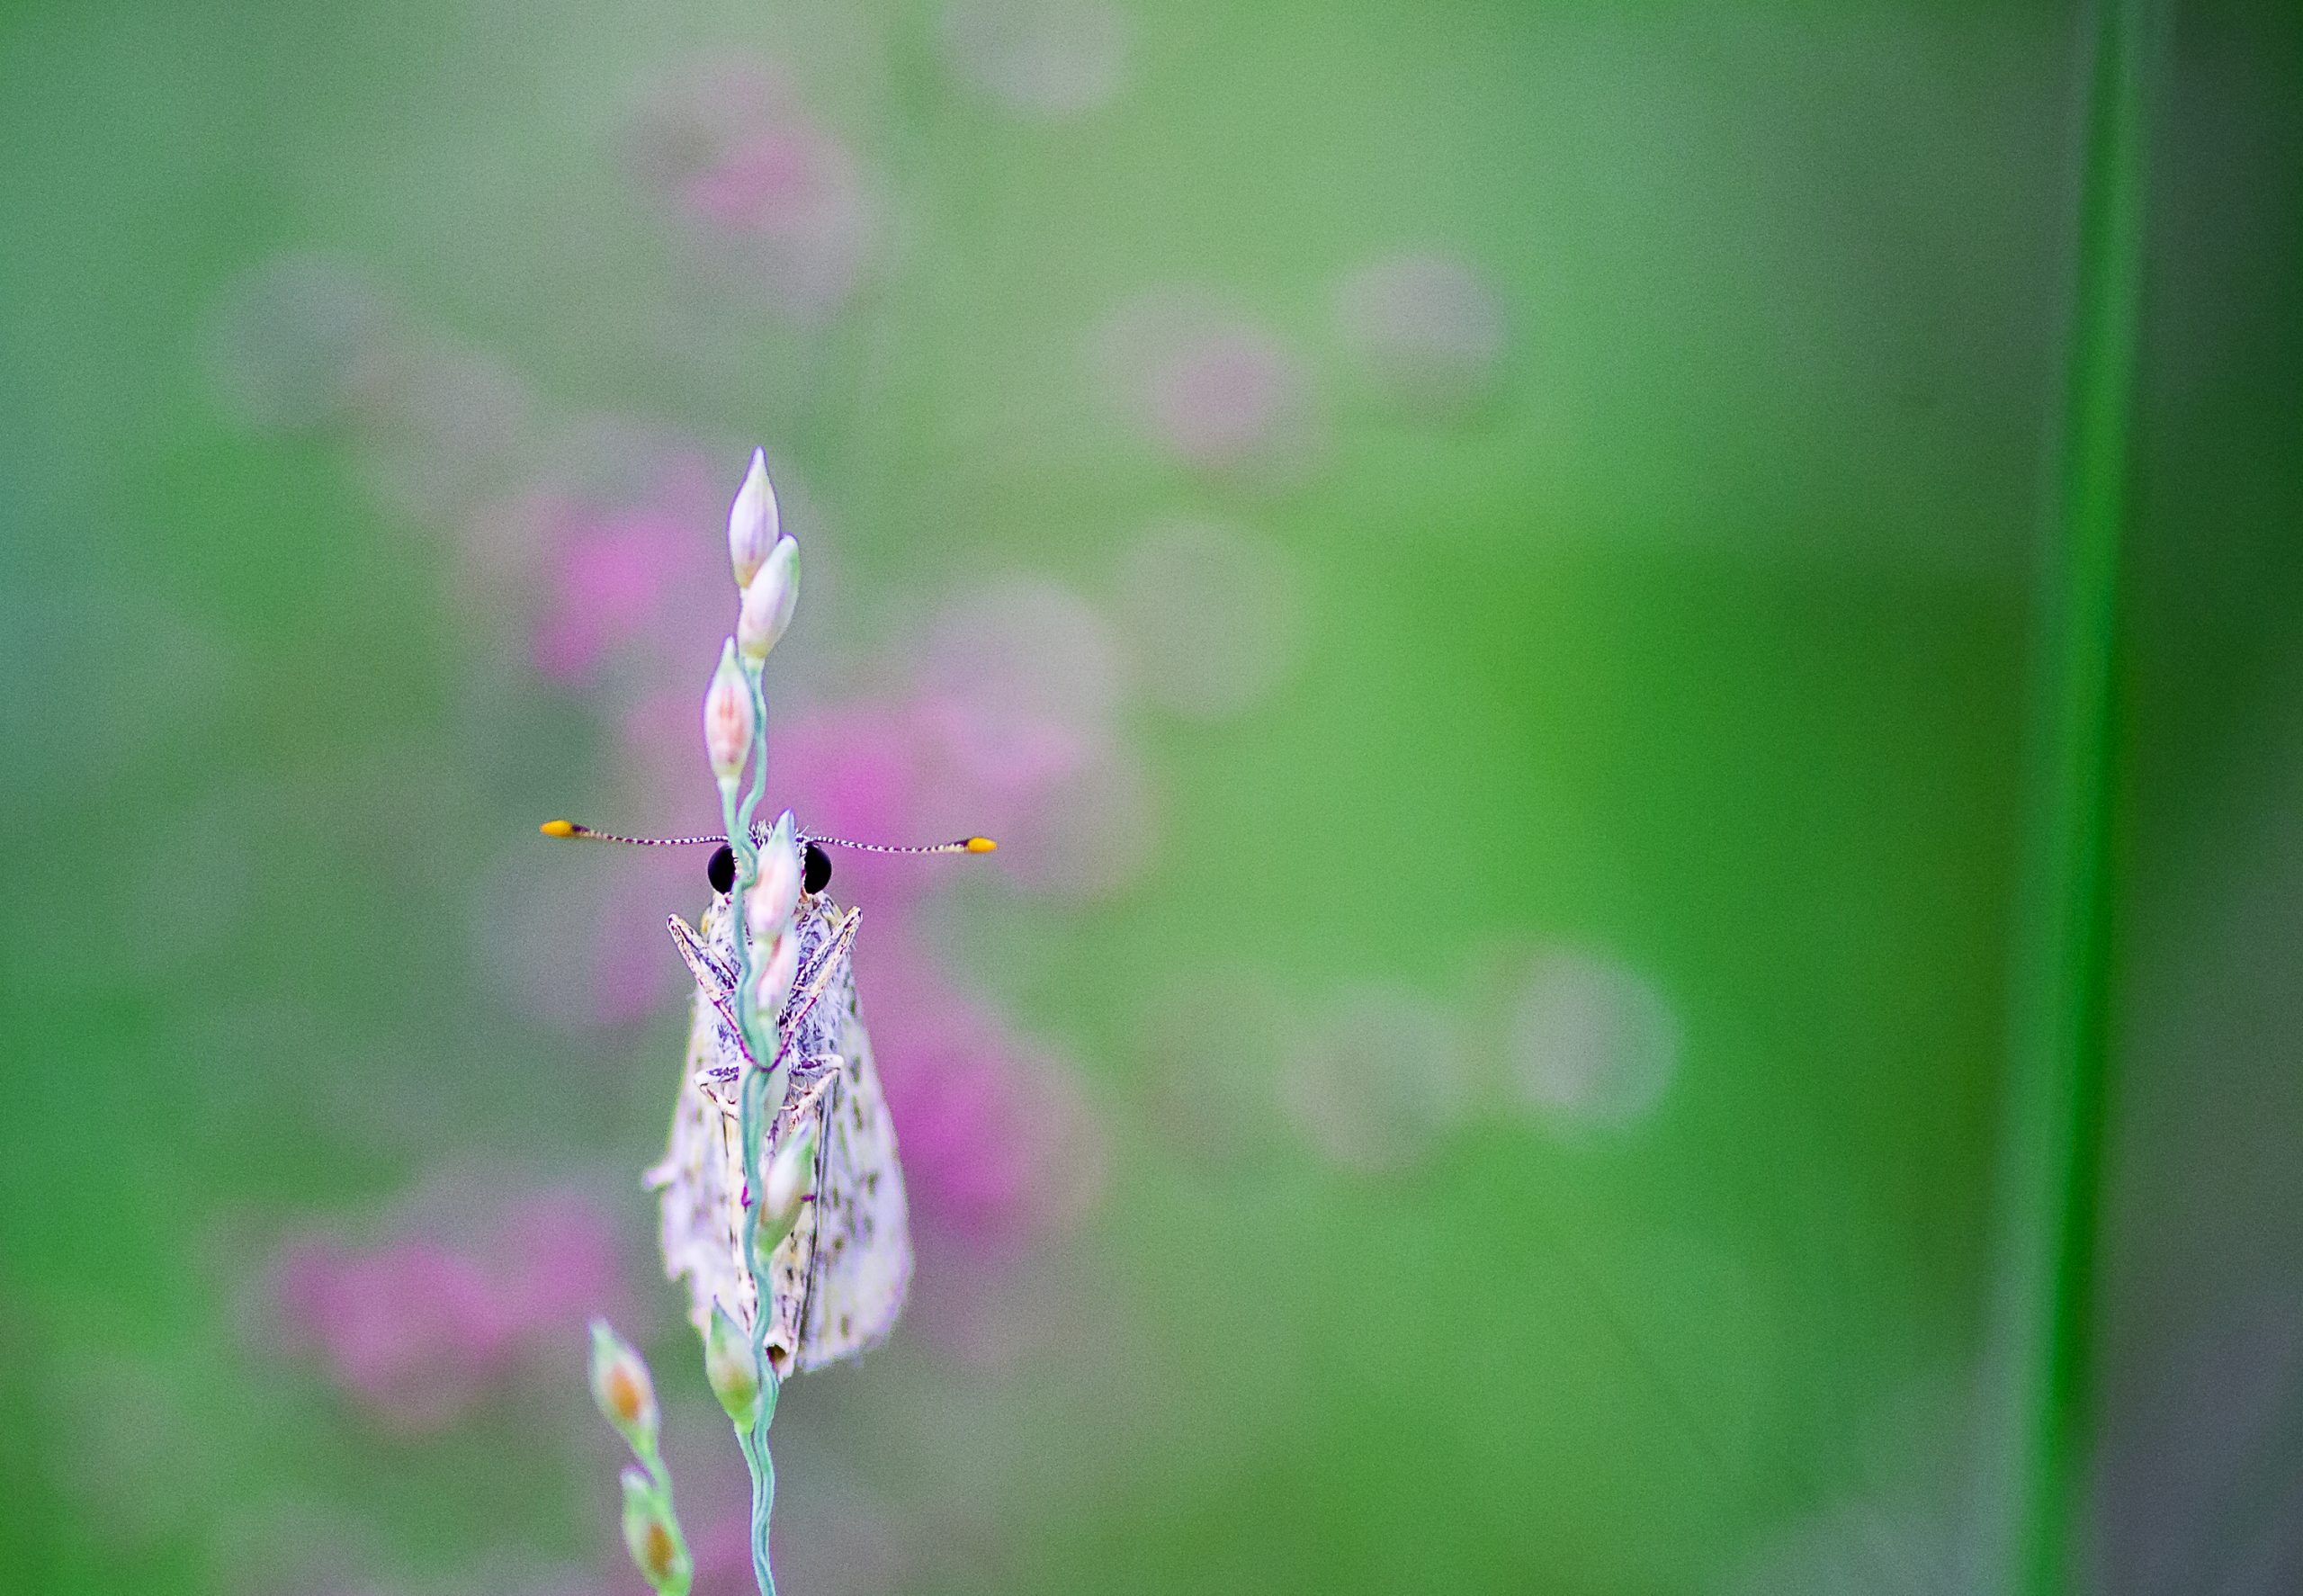 A moth on a flower bud